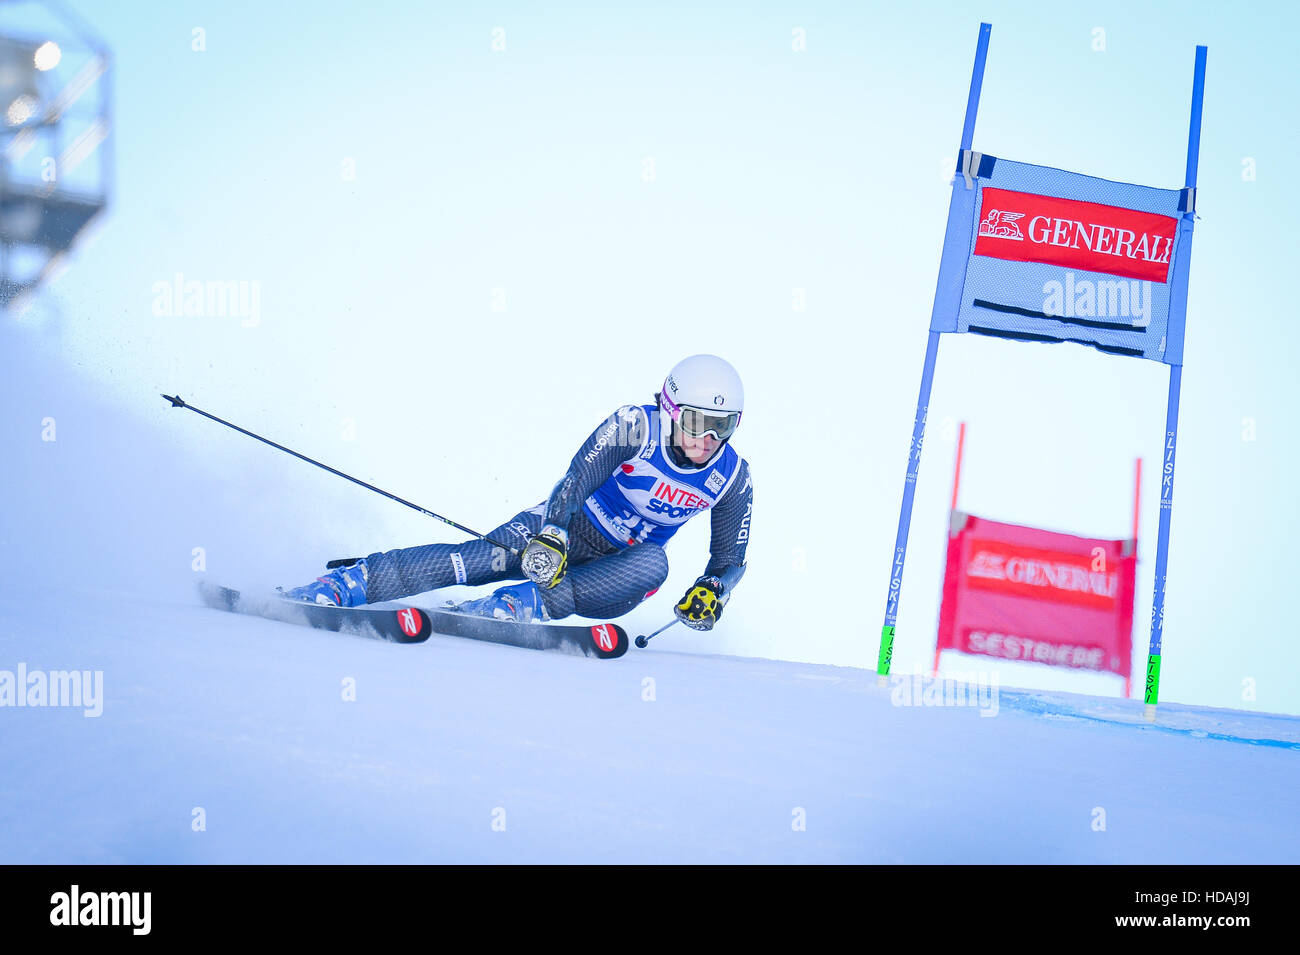 Sestriere, Italy. 10th December, 2016. Audi FIS Women Giant Slalom World Cup in Sestriere on the Kandahar slope, Stock Photo